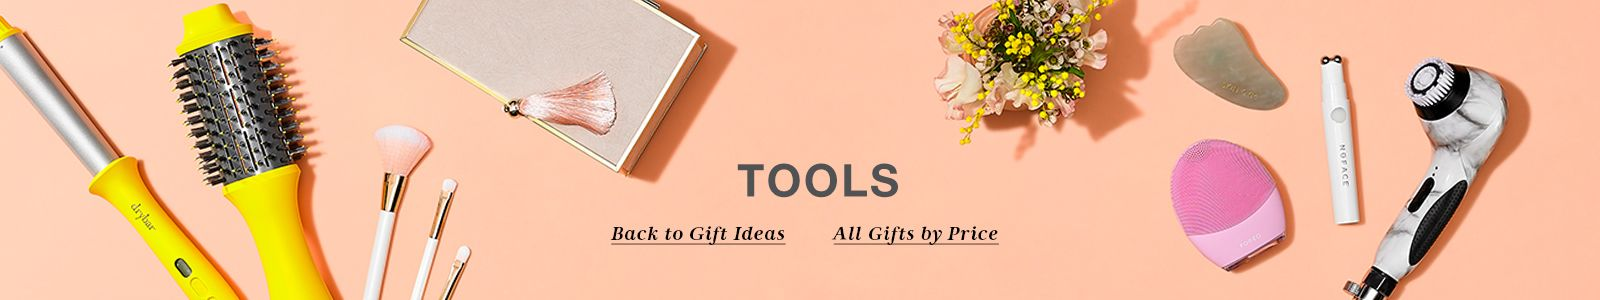 Tools, Back to Gift Ideas, All Gifts by Price